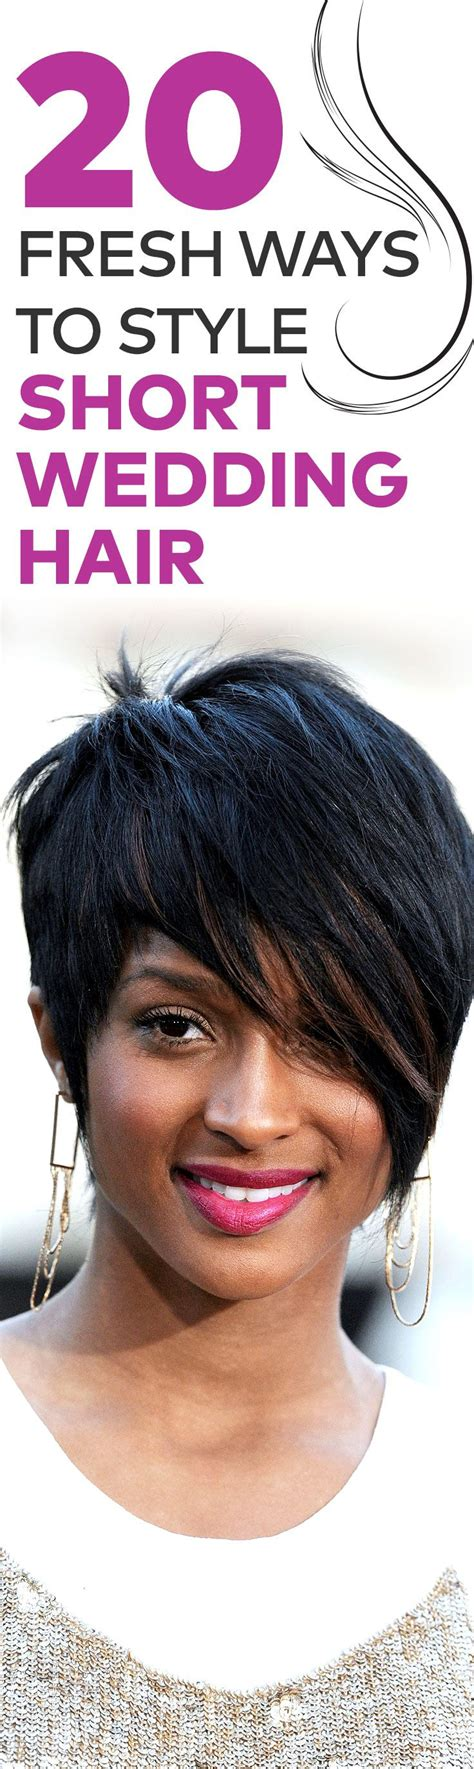 short haircut planner 2141 best images about short hair inspirations on pinterest